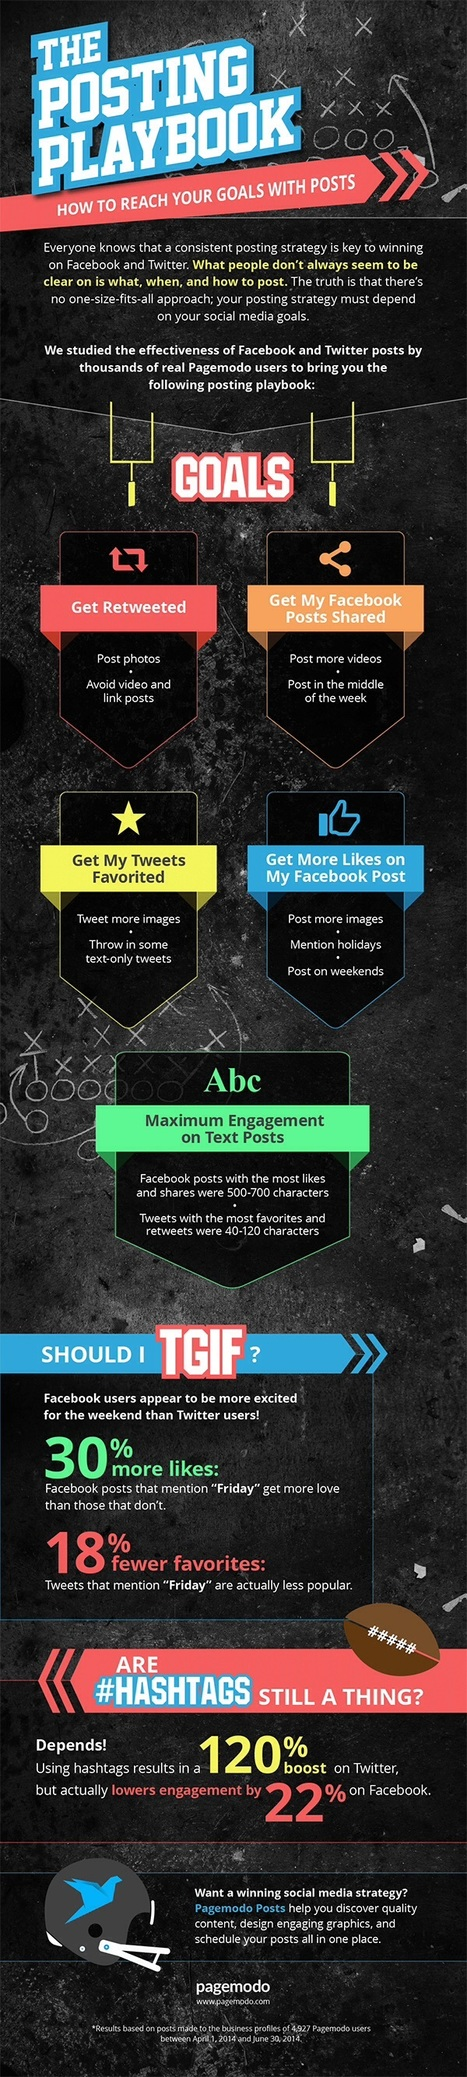 Social Media Basics: What, When and How to Post on Twitter and Facebook | MarketingHits | Scoop.it